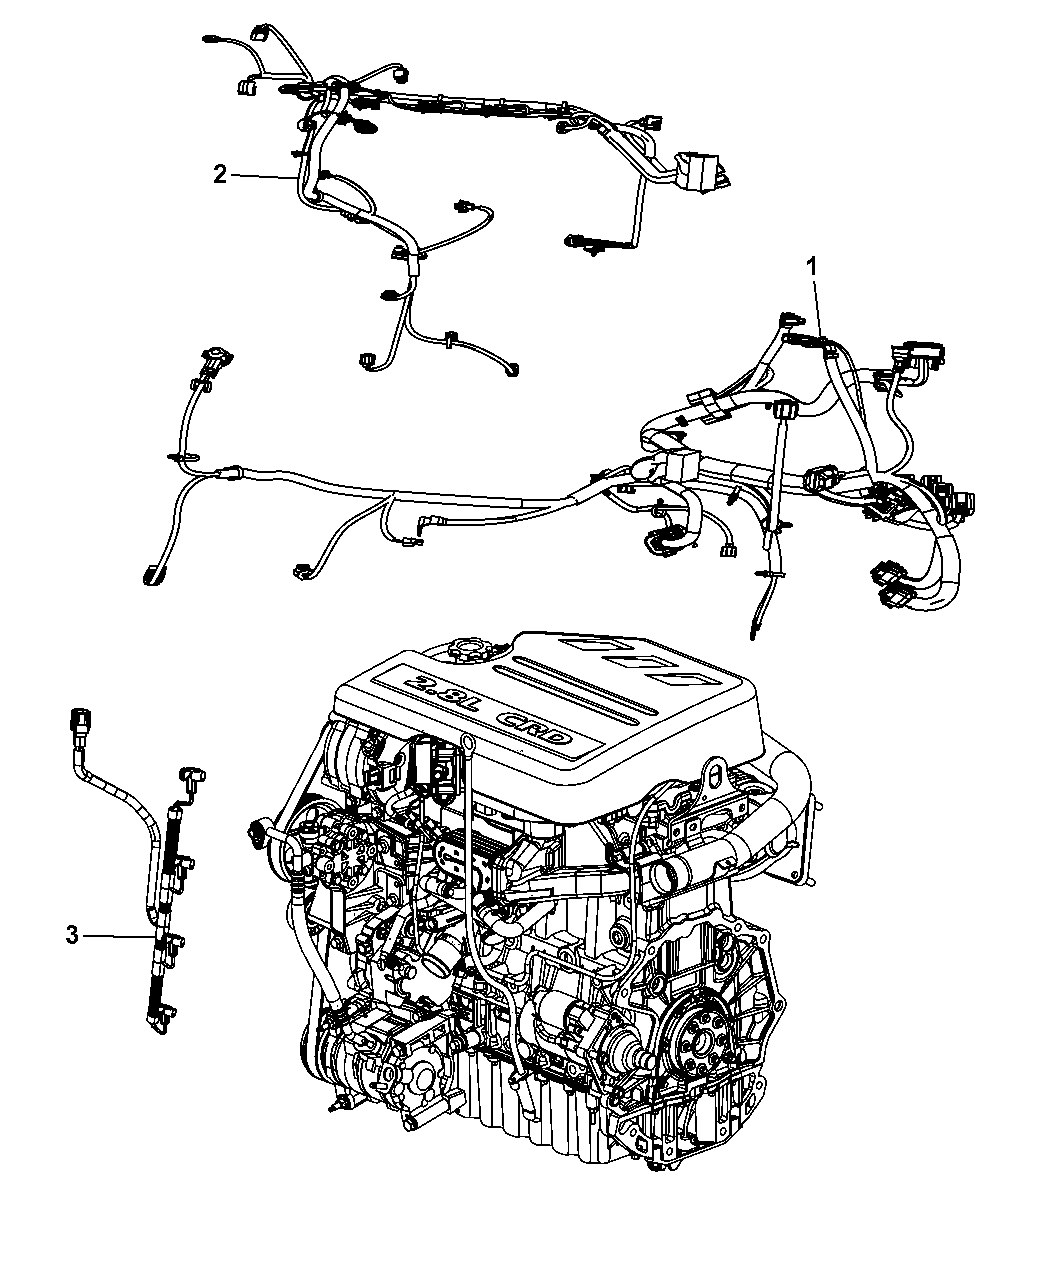 2013 Chrysler Town Country Wiring Engine Mopar Parts Giant